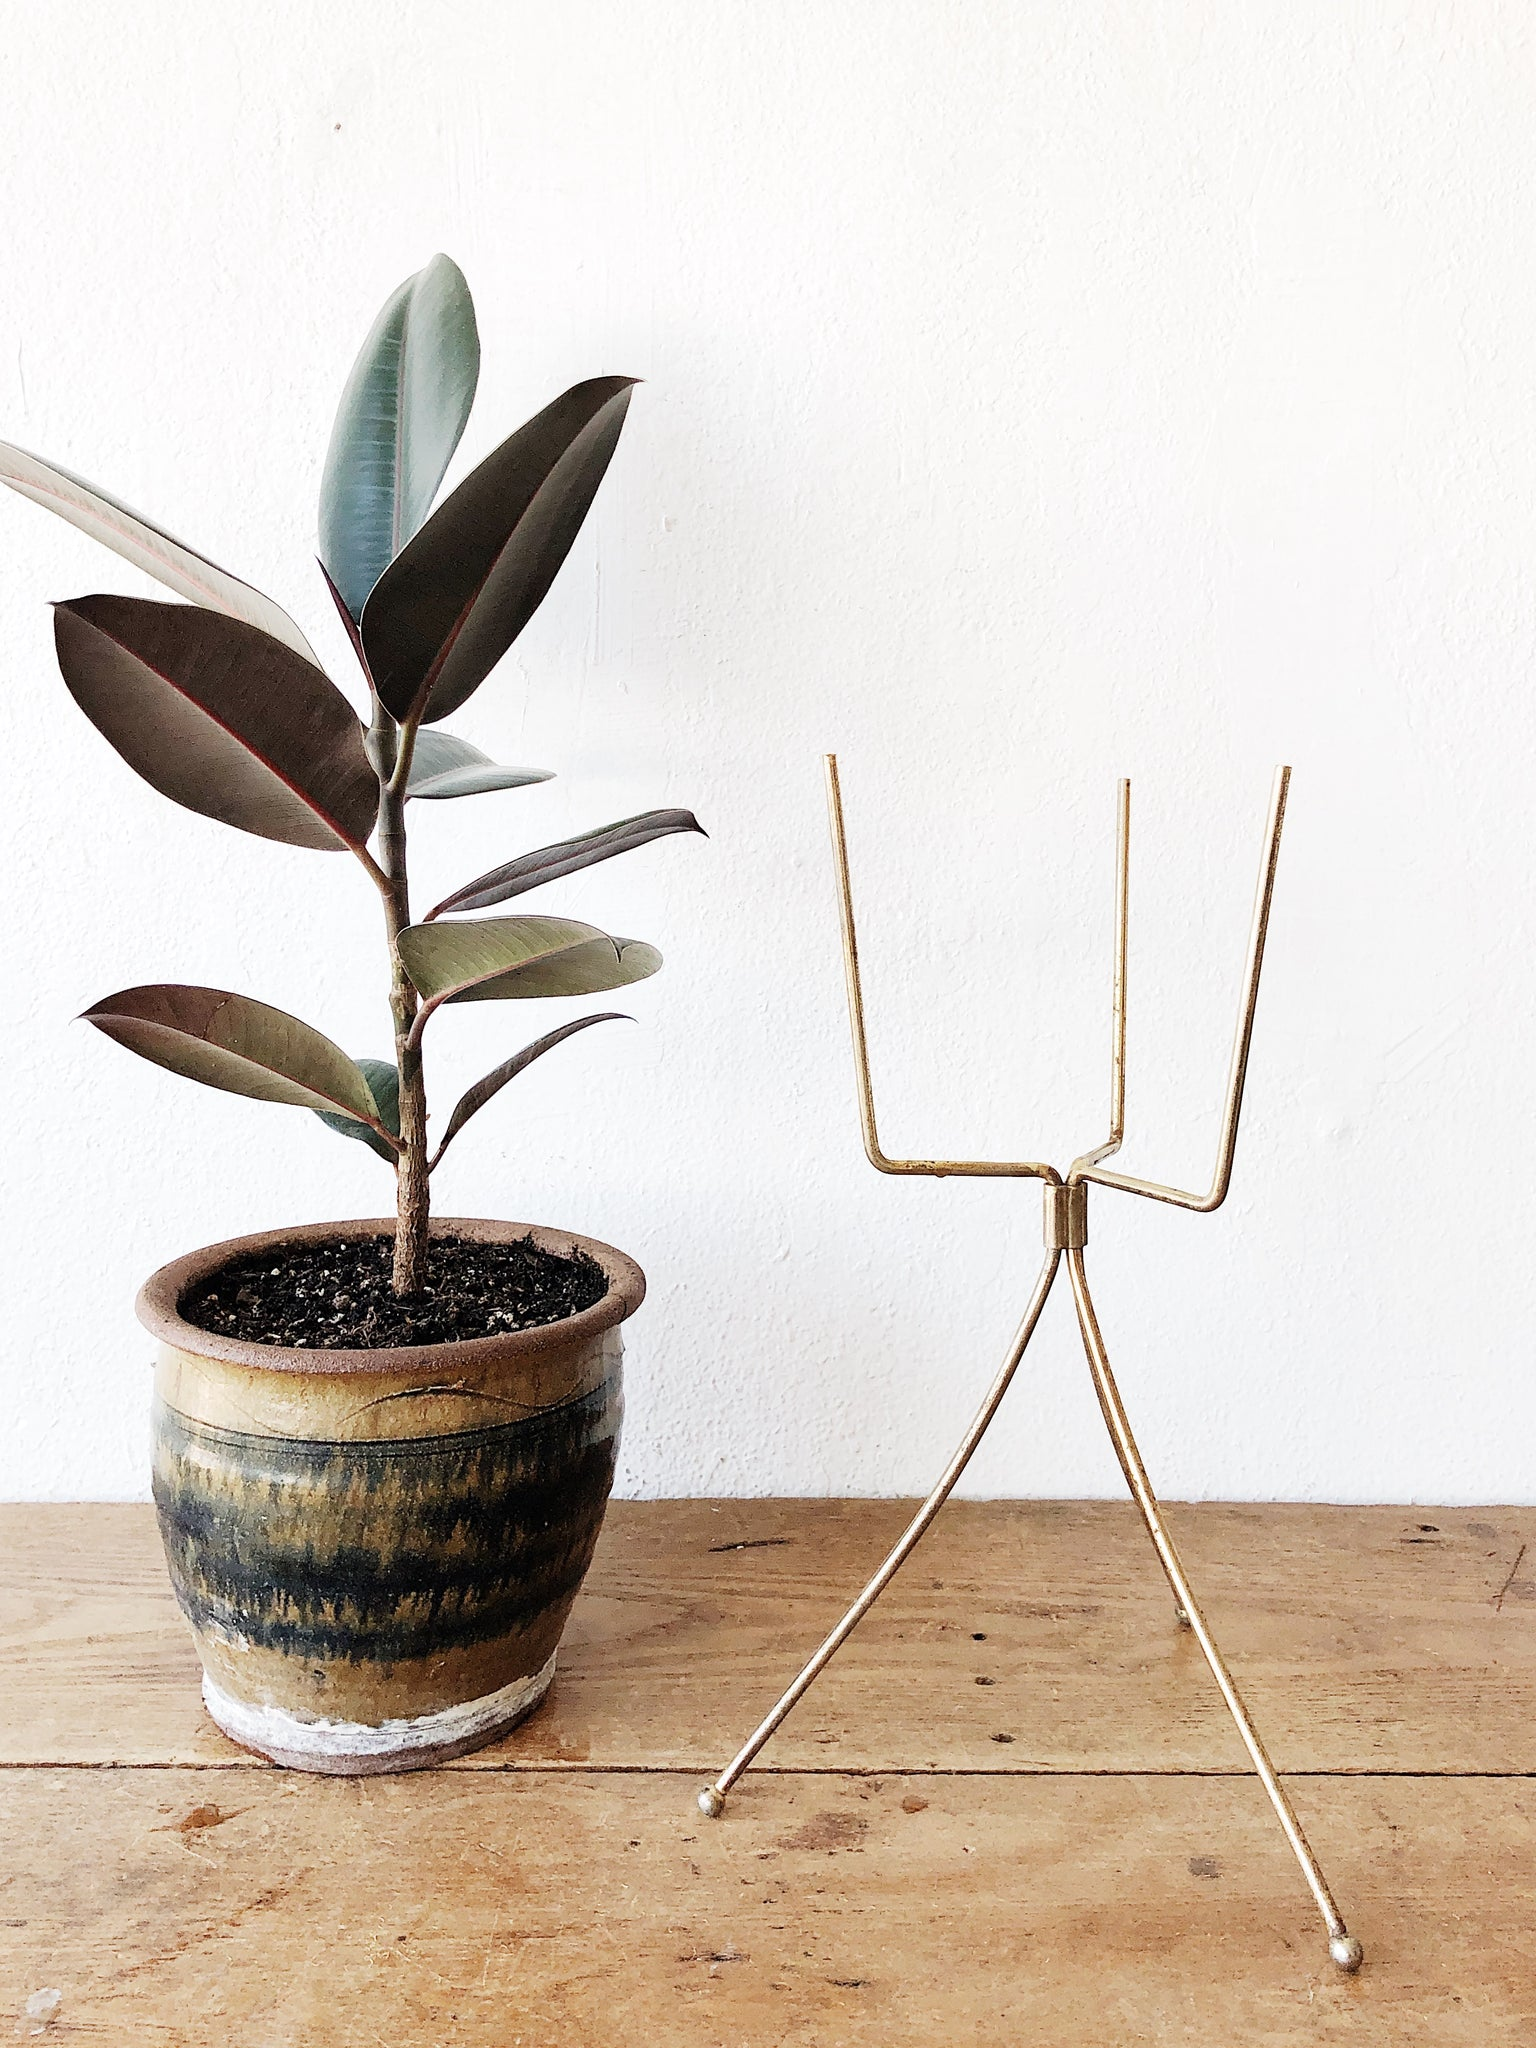 MCM Plant Stand and Ficus Elastica